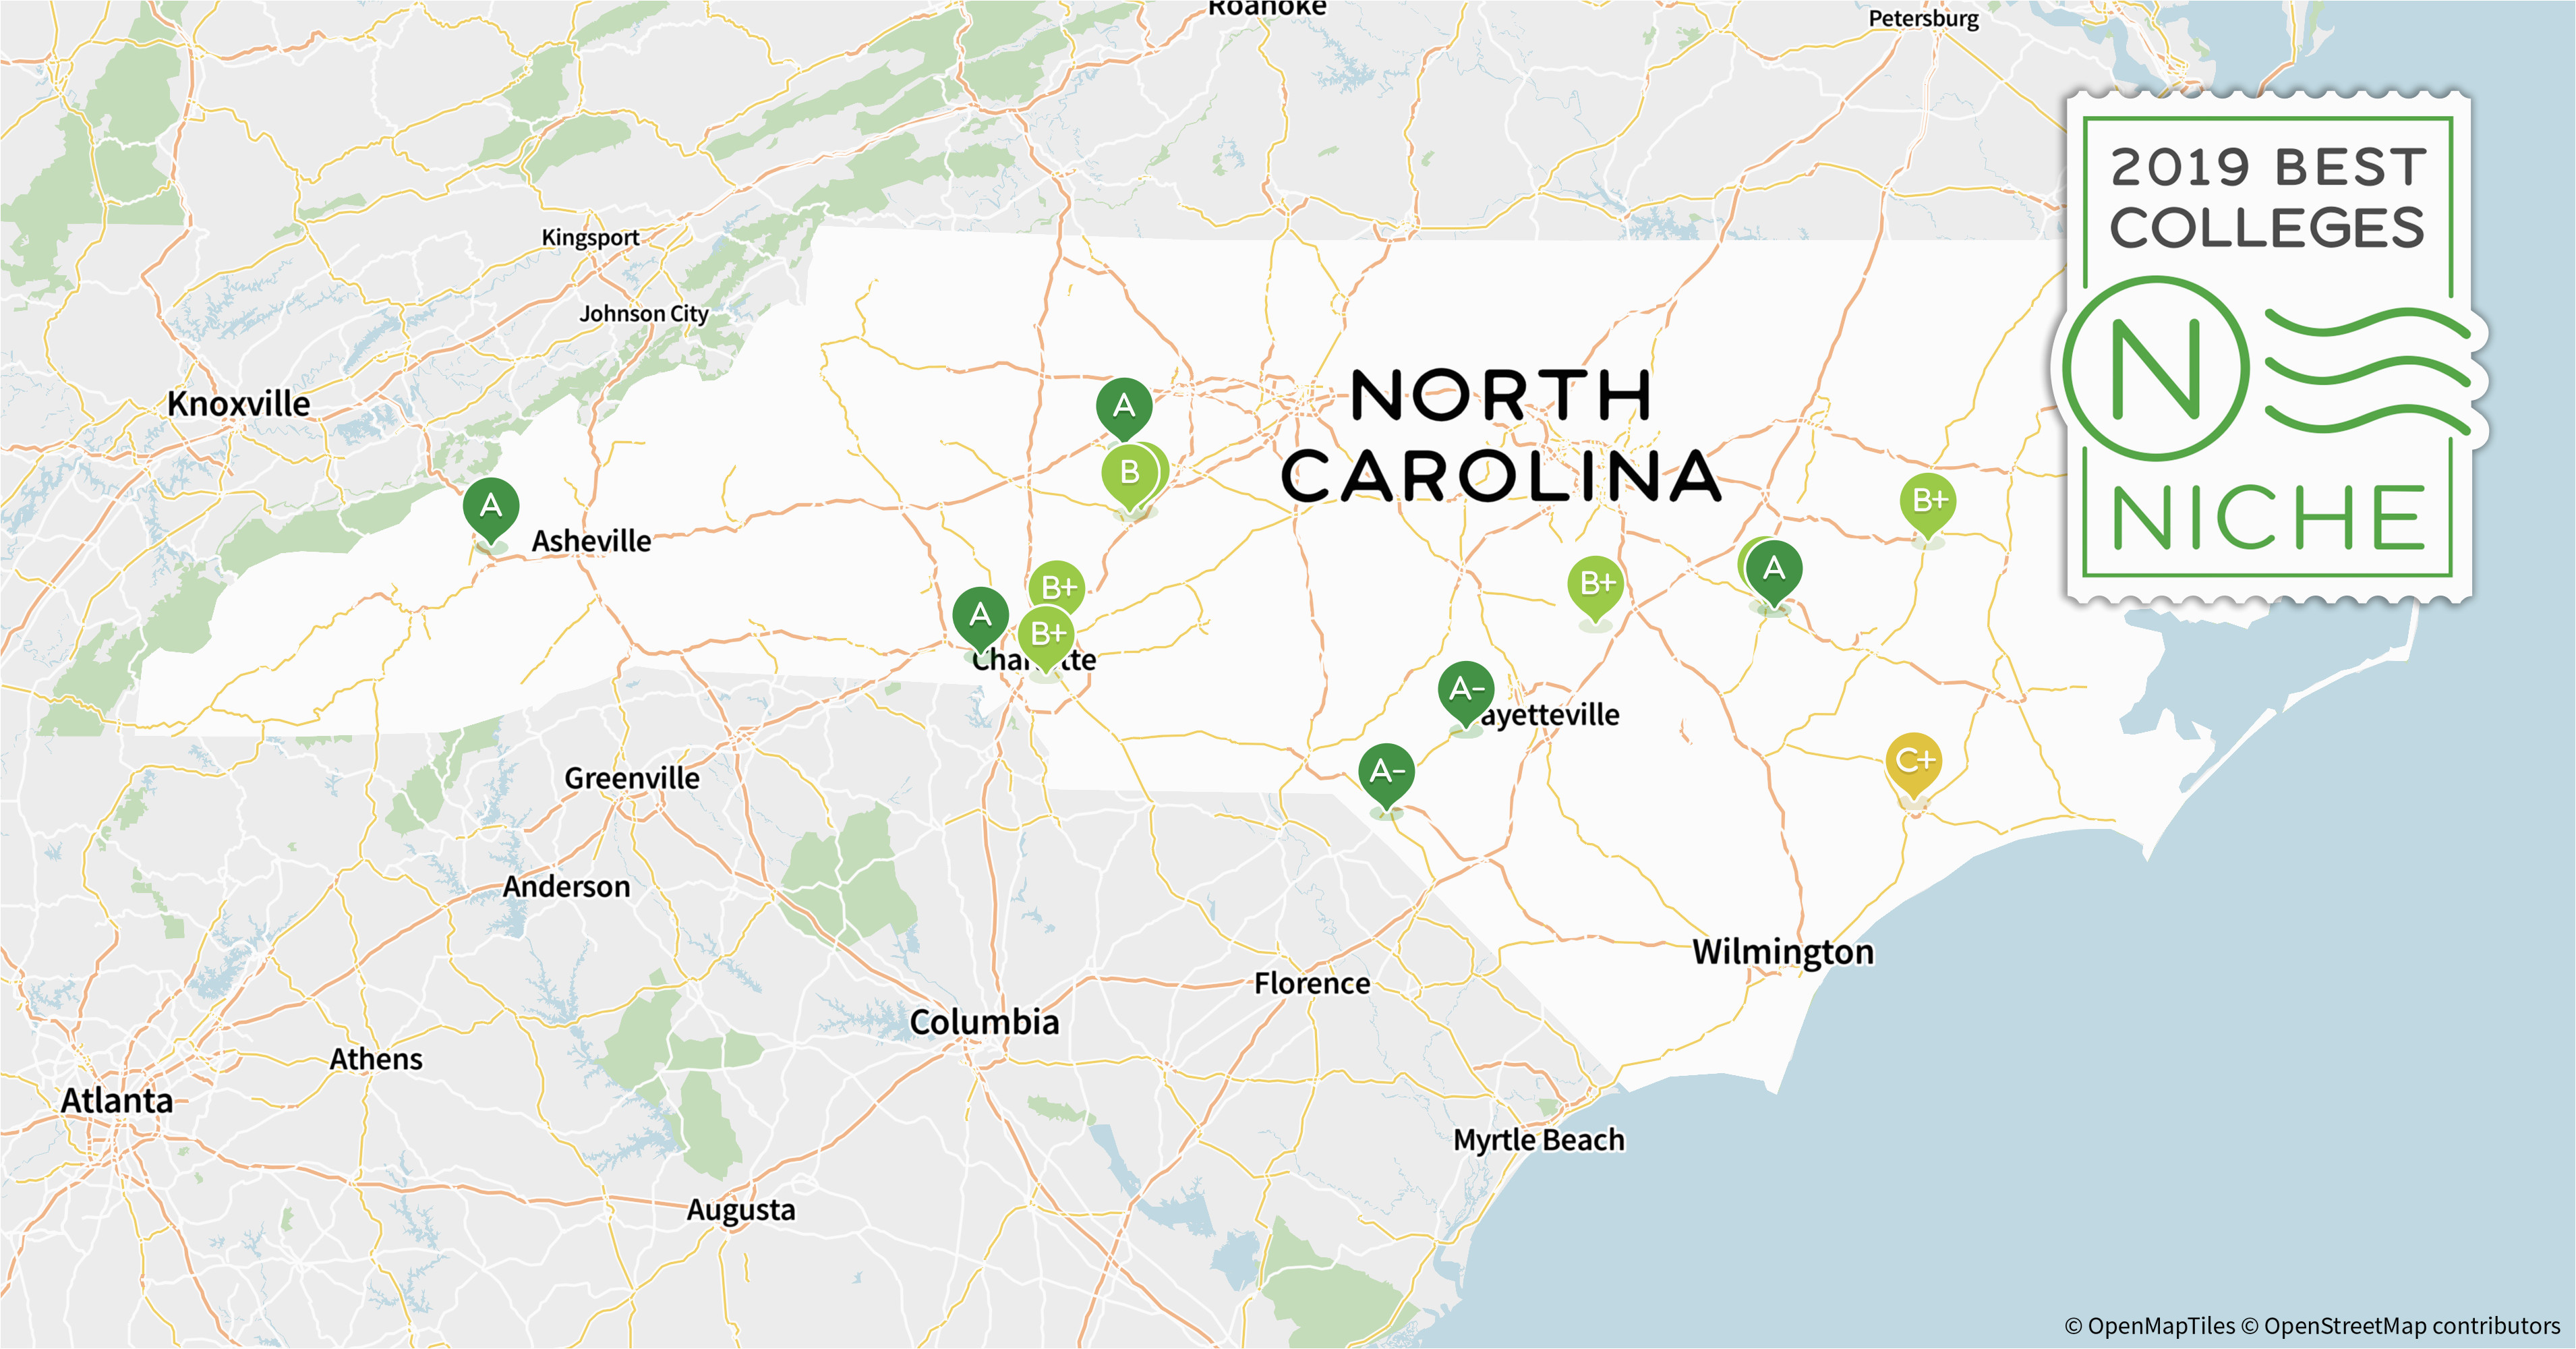 North Carolina Colleges and Universities Map 2019 Best Colleges In north Carolina Niche